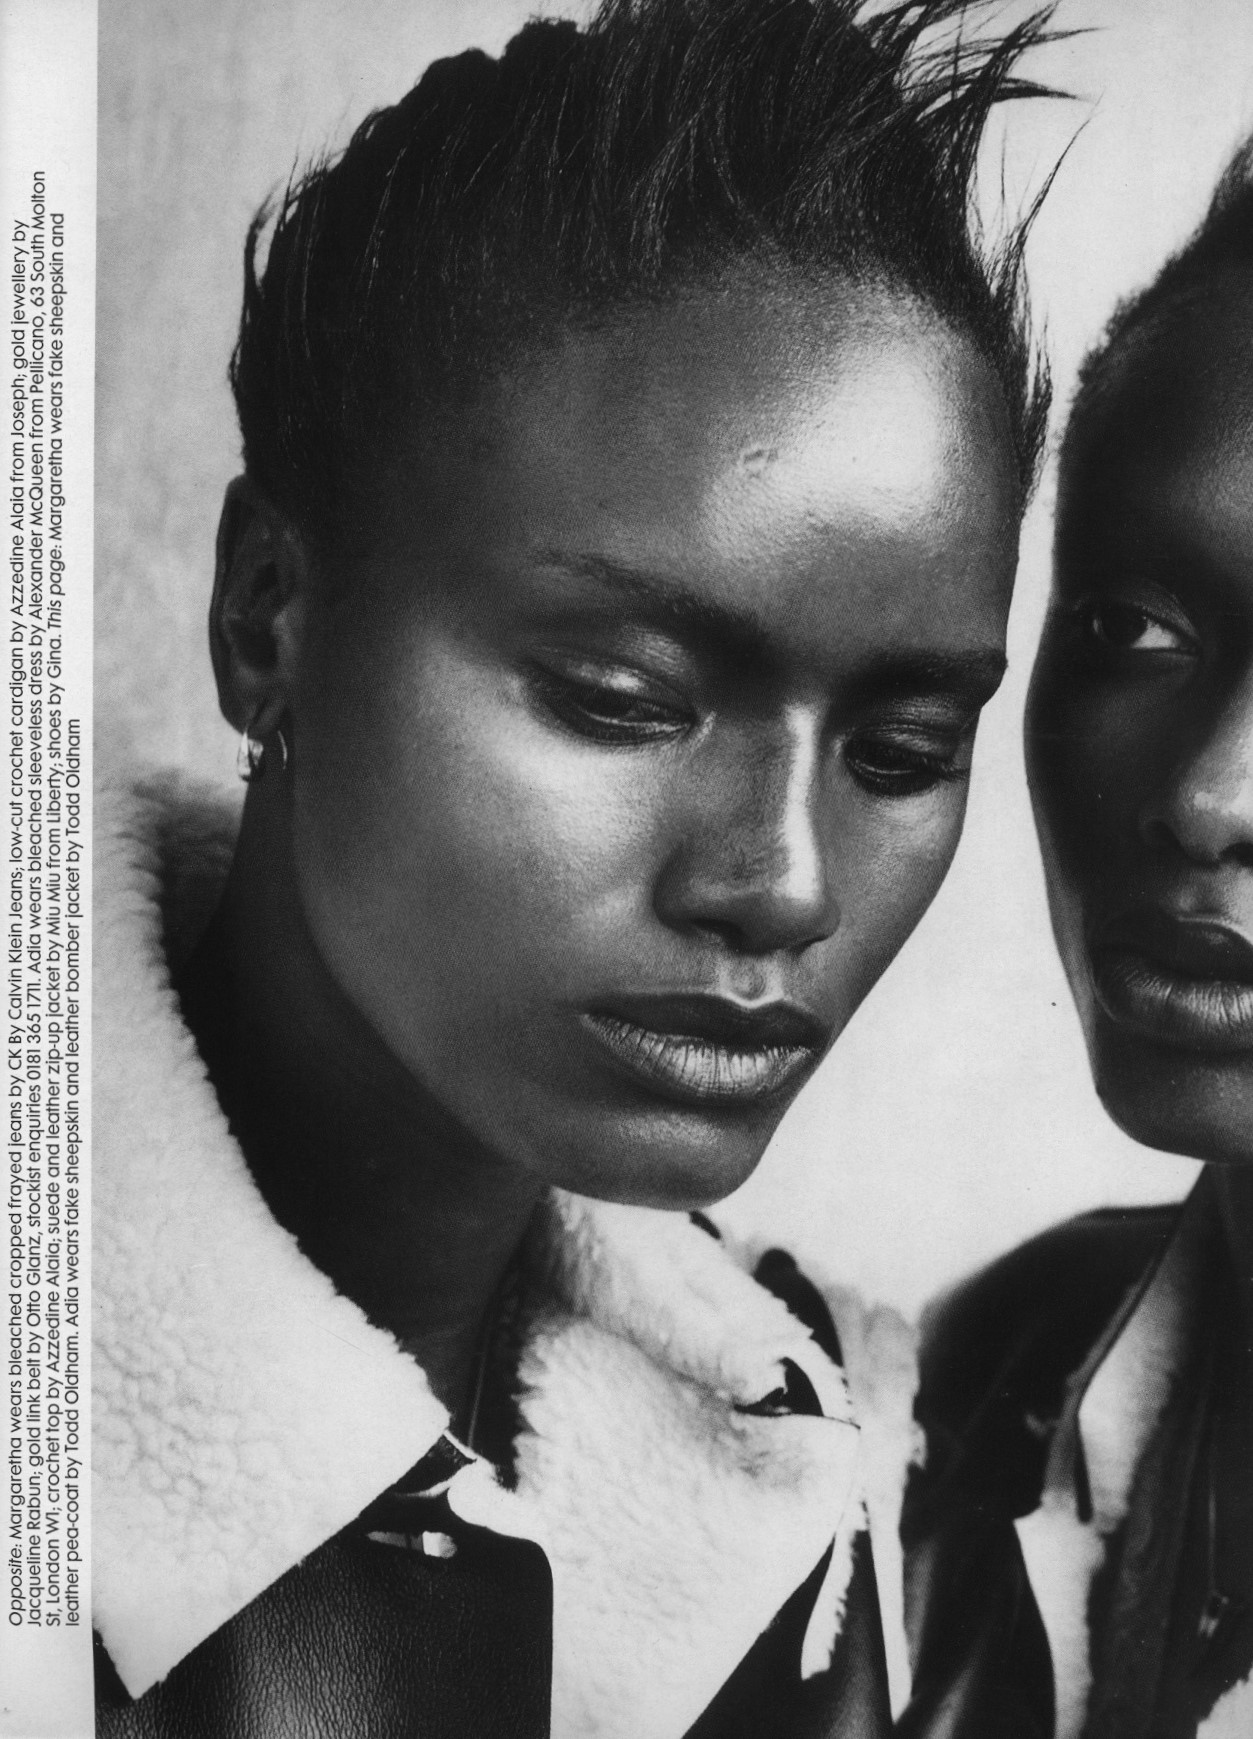 south side photography peter lindbergh the face no 98 november 1996